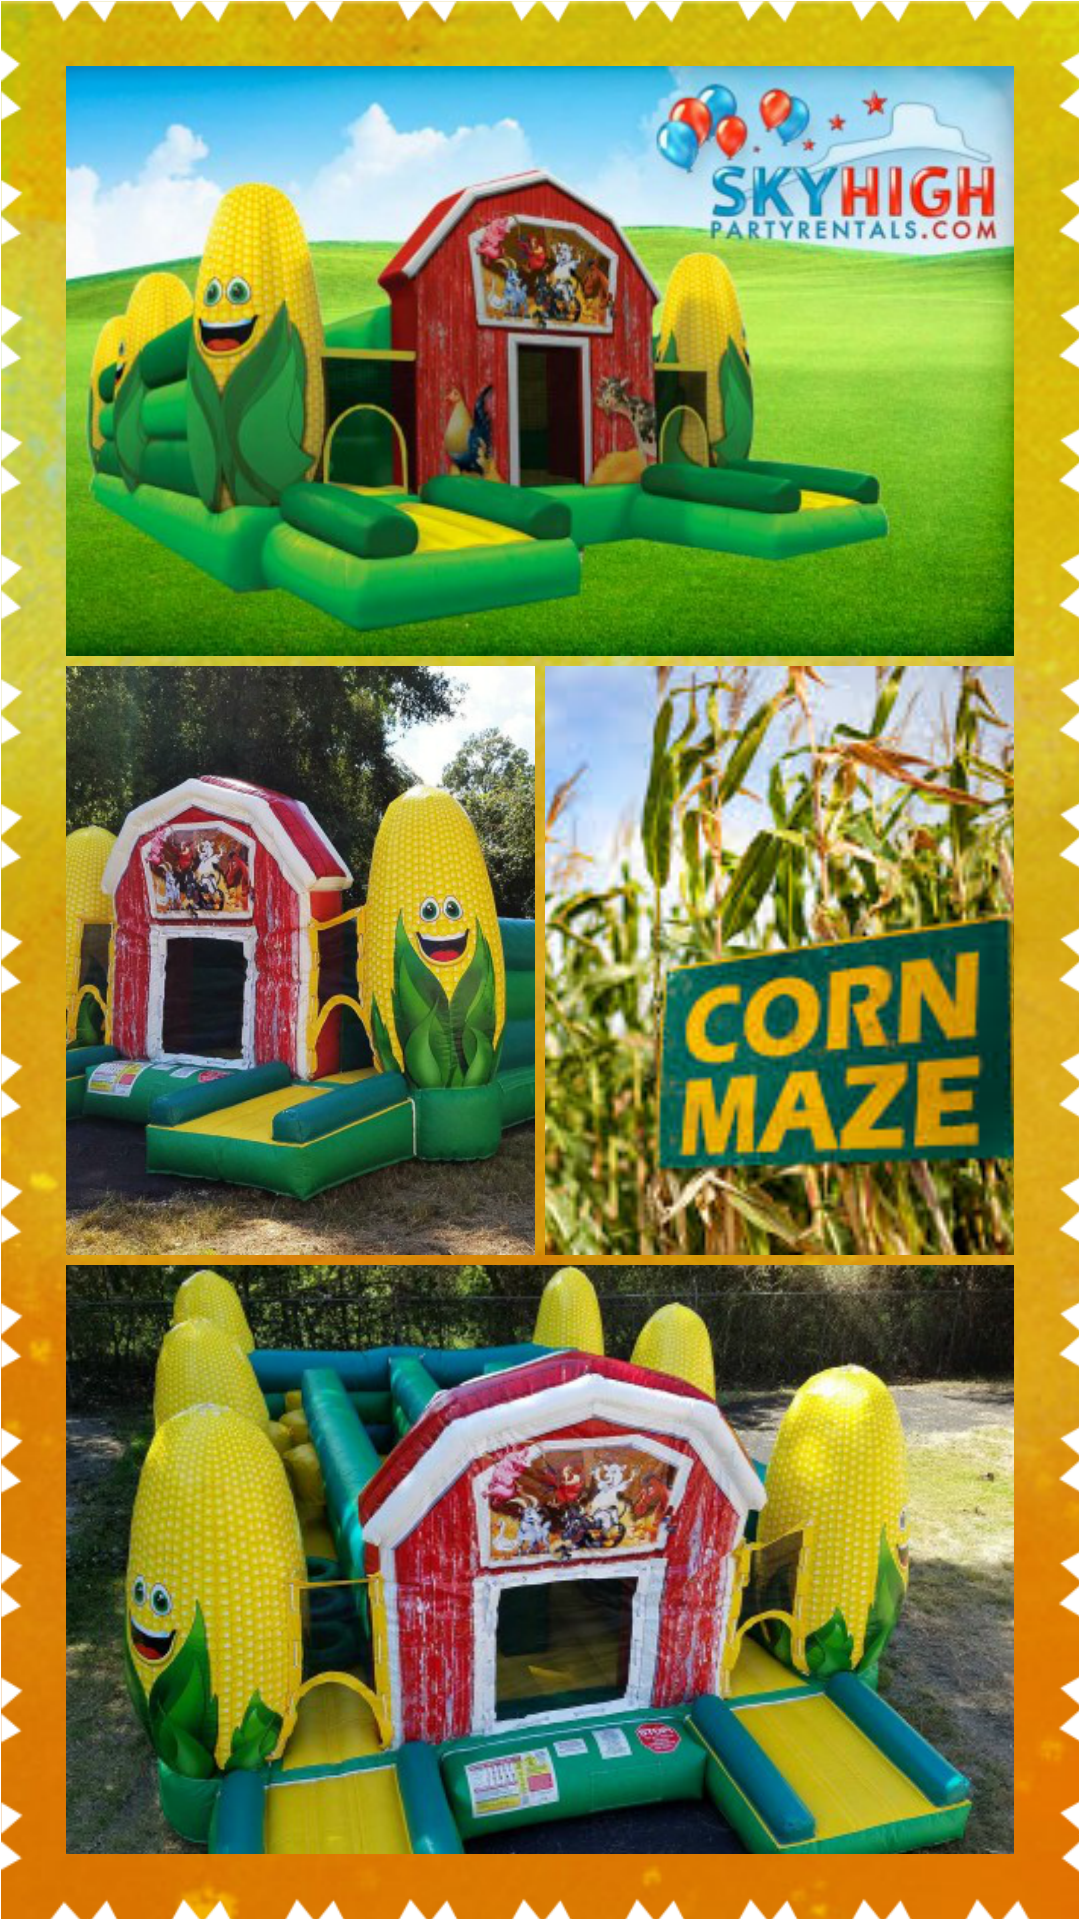 the corn maze obstacle course is one of our newest most exciting